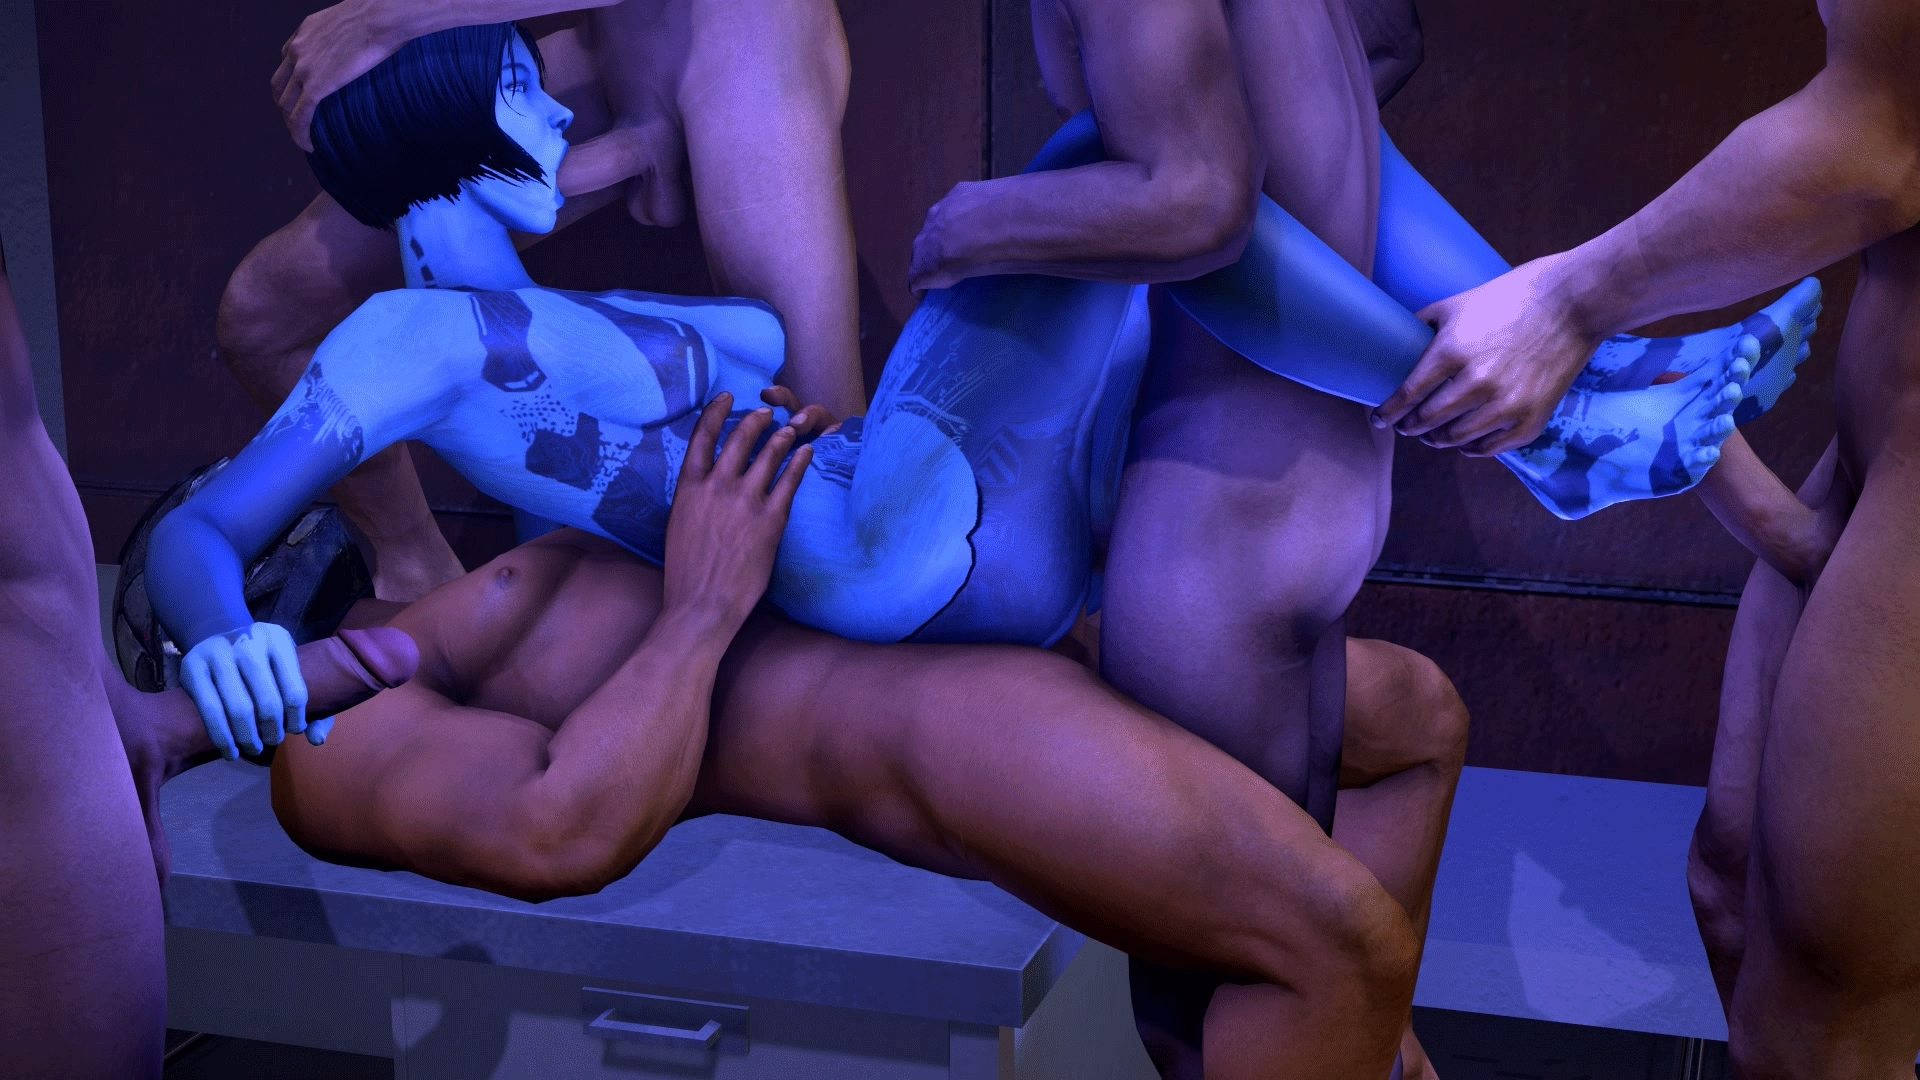 Halo cortana human porn adult movie